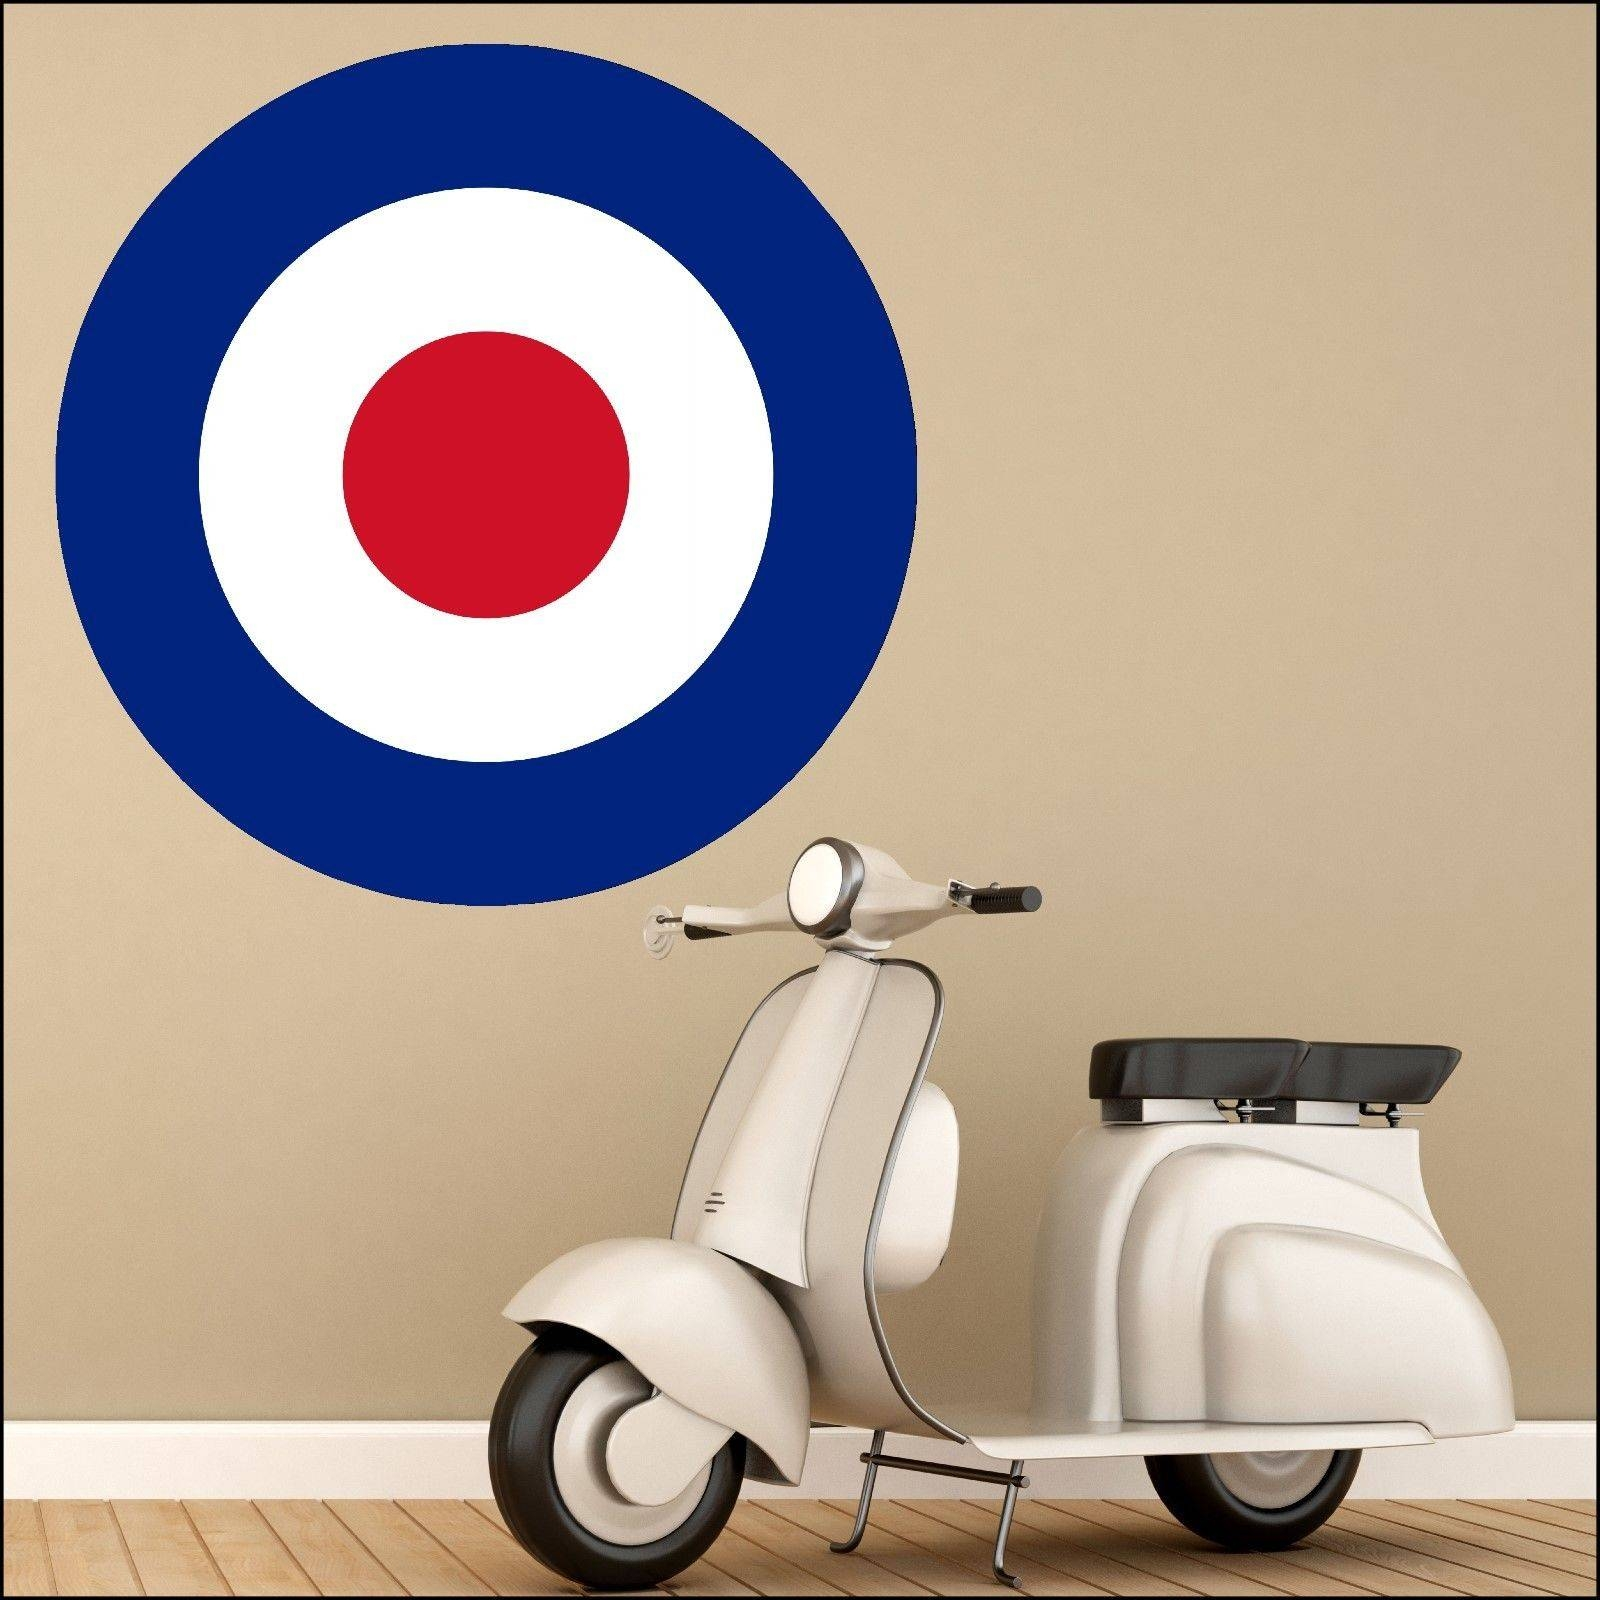 Large Mod Mods Scooter Red White Blue Target Wall Art Sticker 6 Intended For Most Up To Date Vespa 3D Wall Art (View 10 of 20)